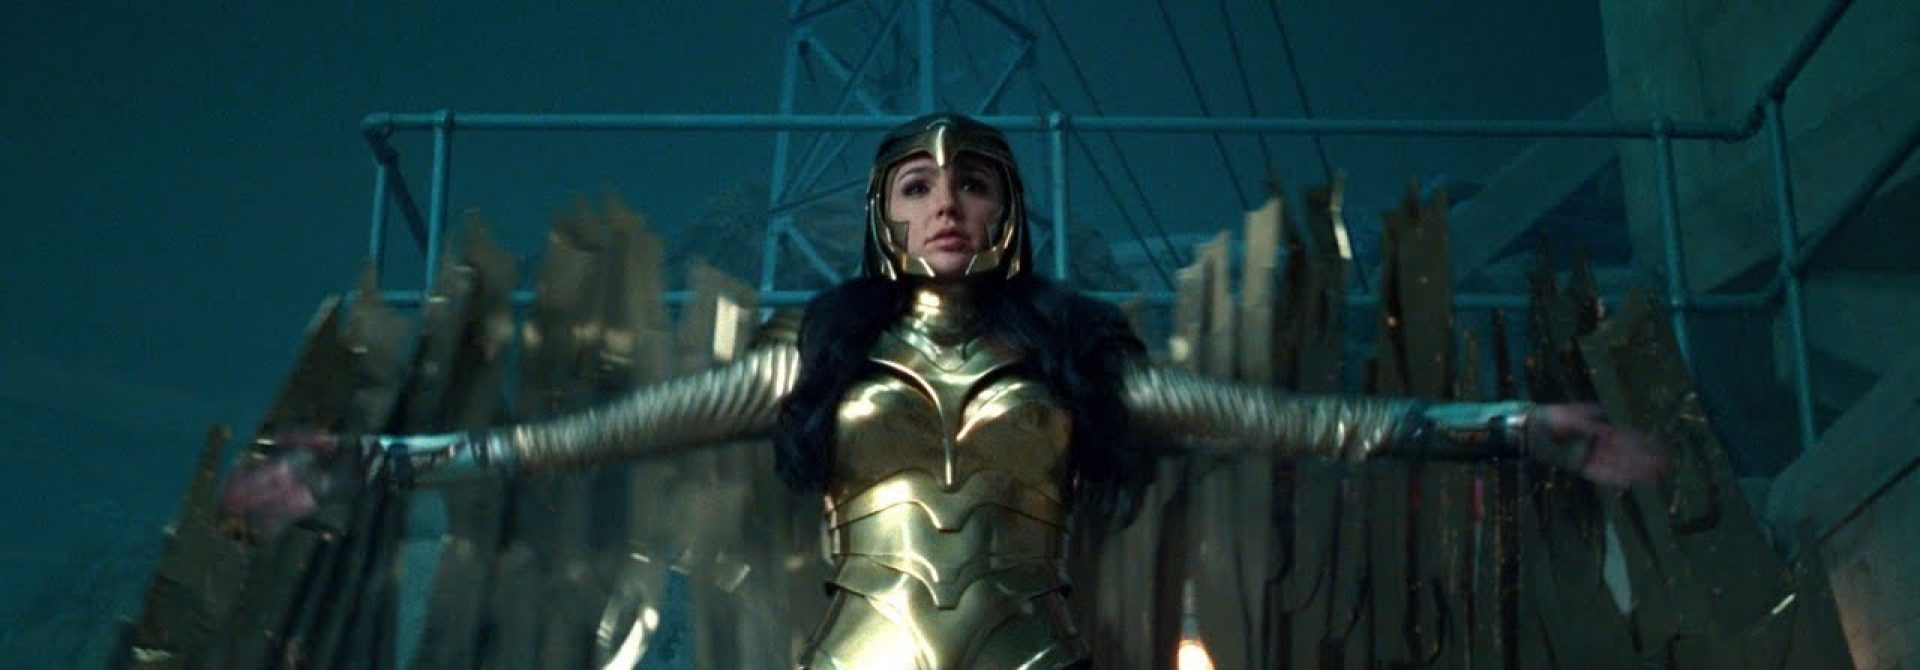 Wonder Woman 1984 Withheld Until Christmas